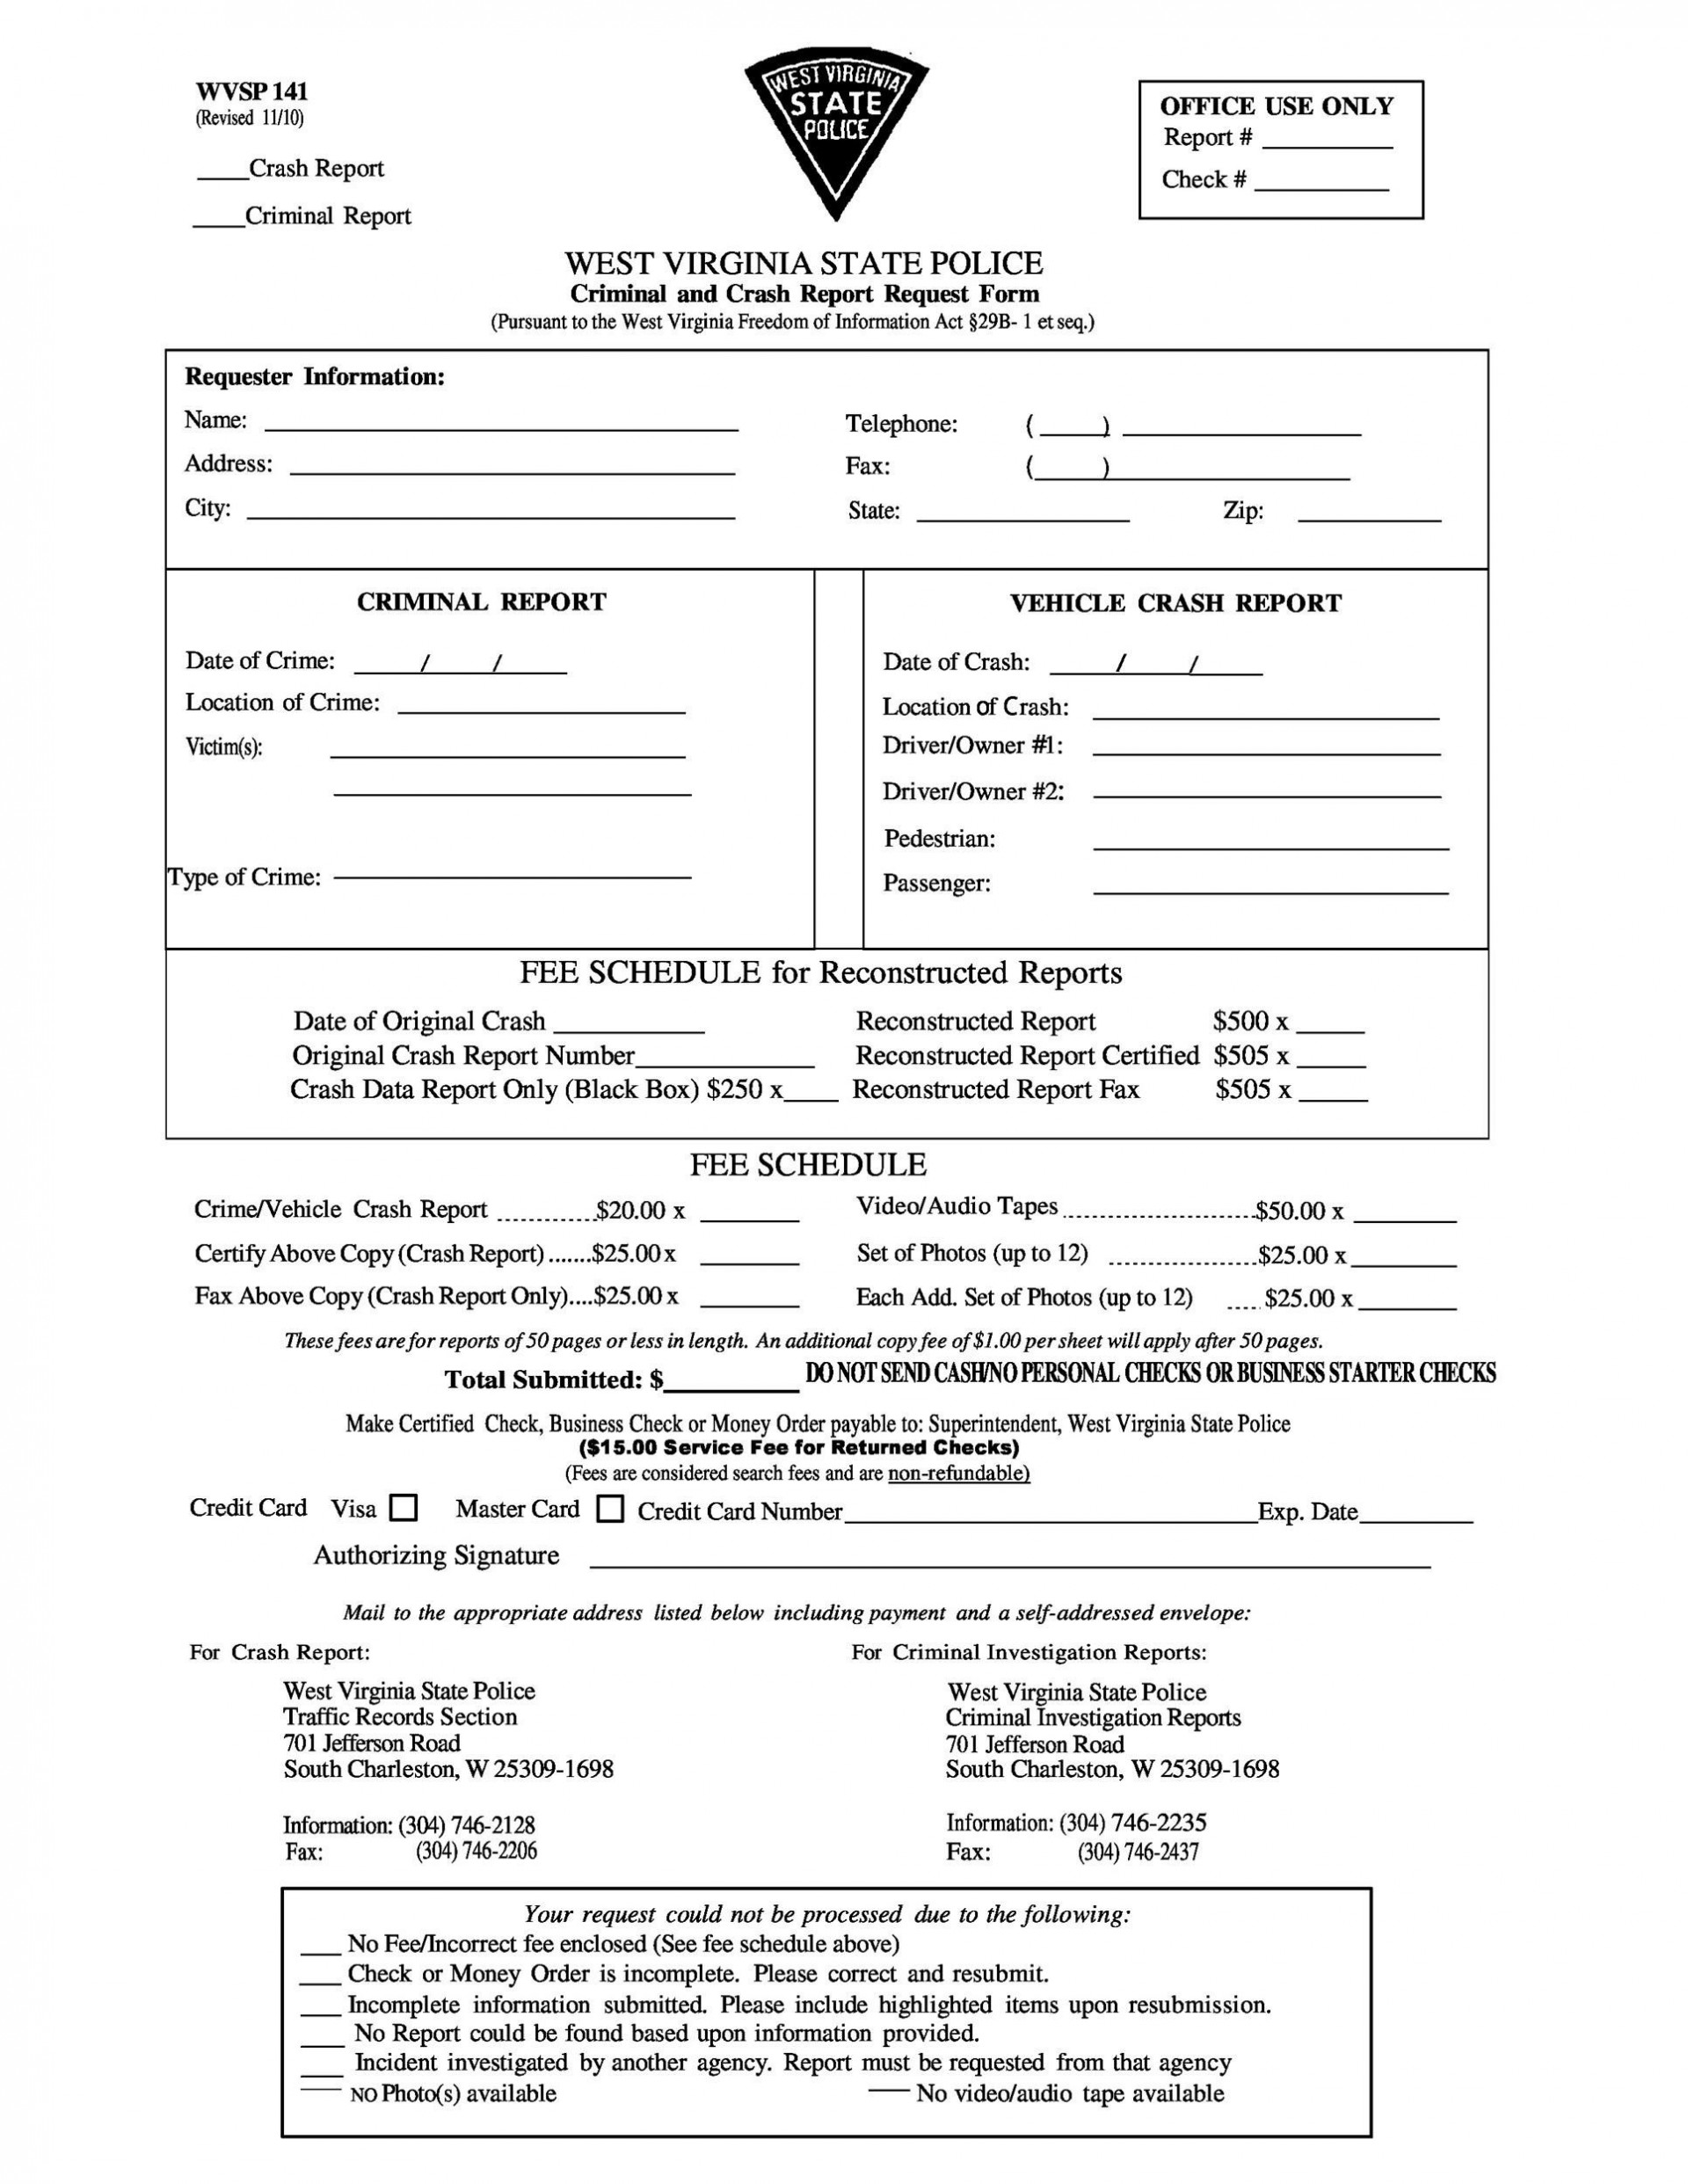 007 Unforgettable Police Report Template Microsoft Word High Definition 1920